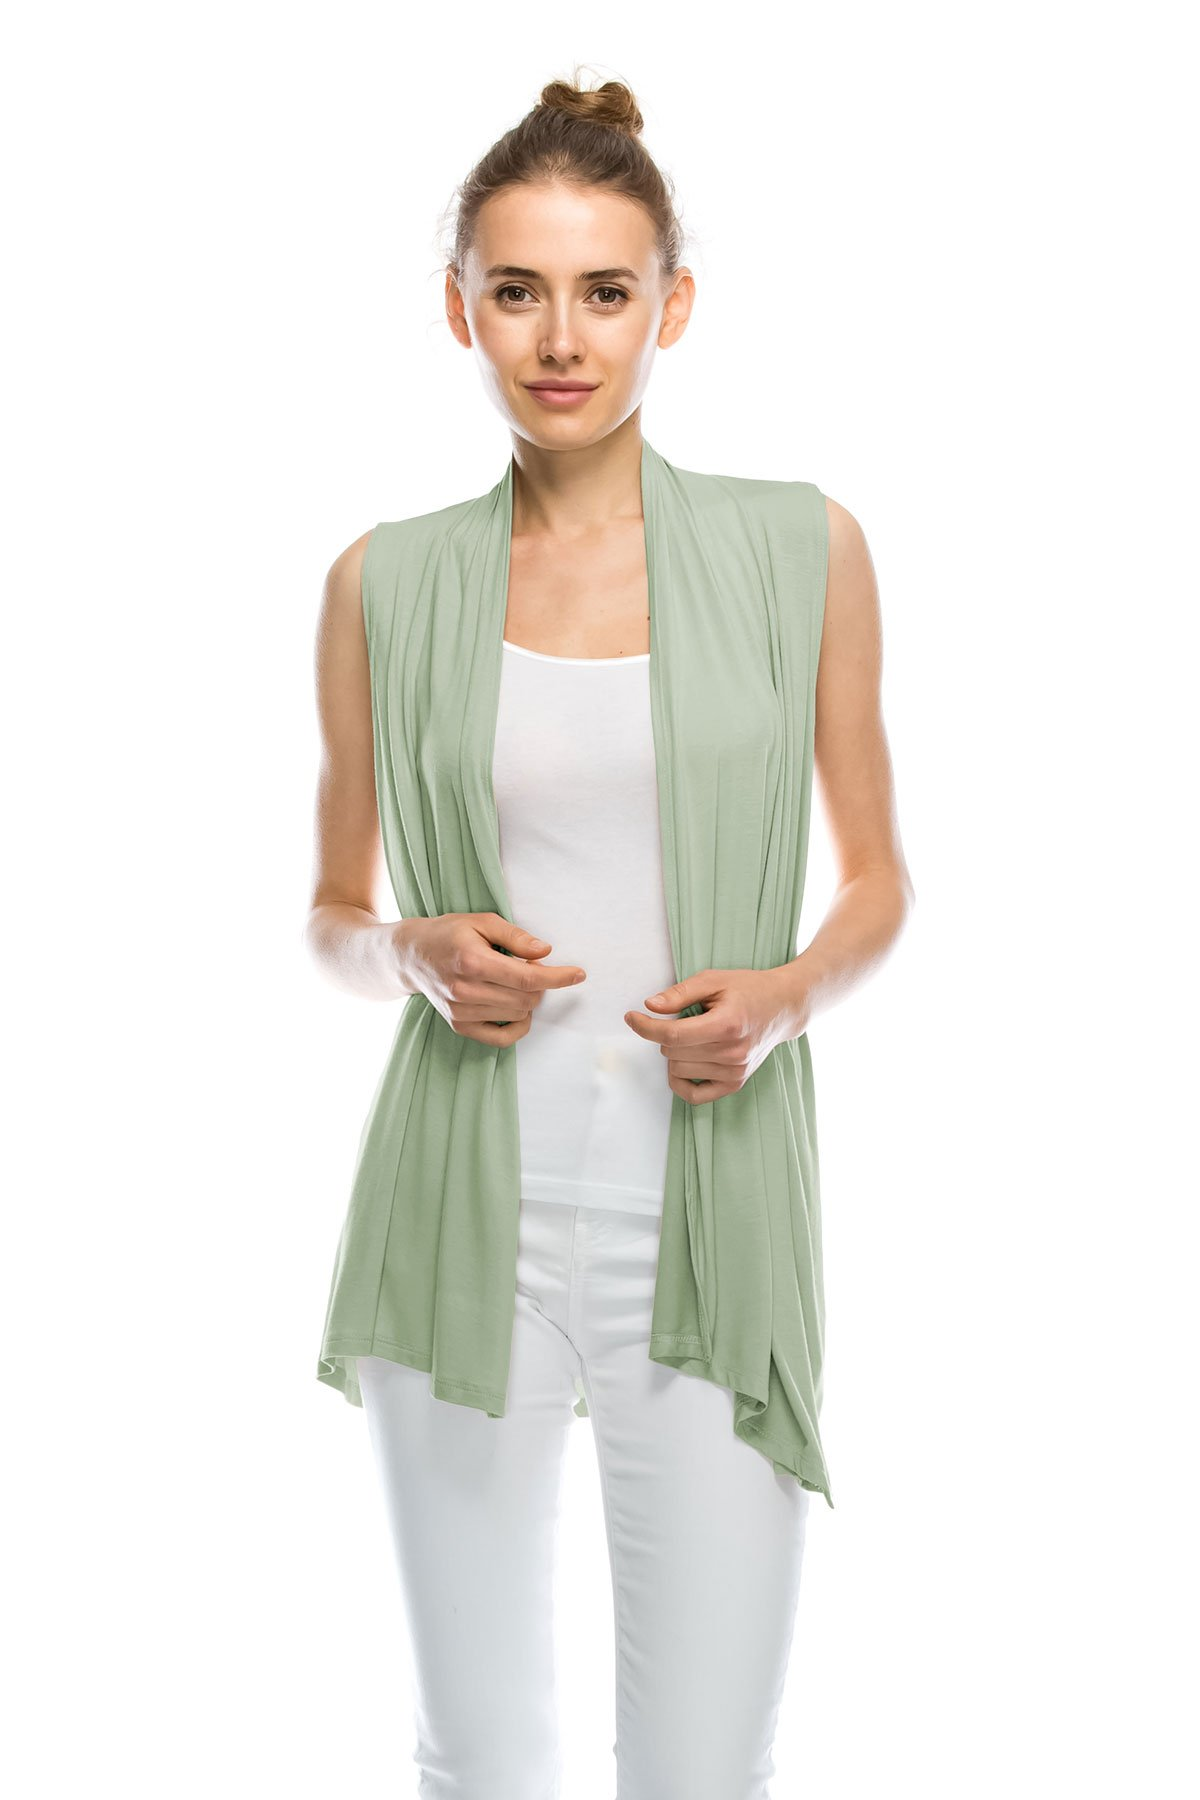 J Doe Style Womens Lightweight Sleeveless Open Front Cardigan, M, Sage